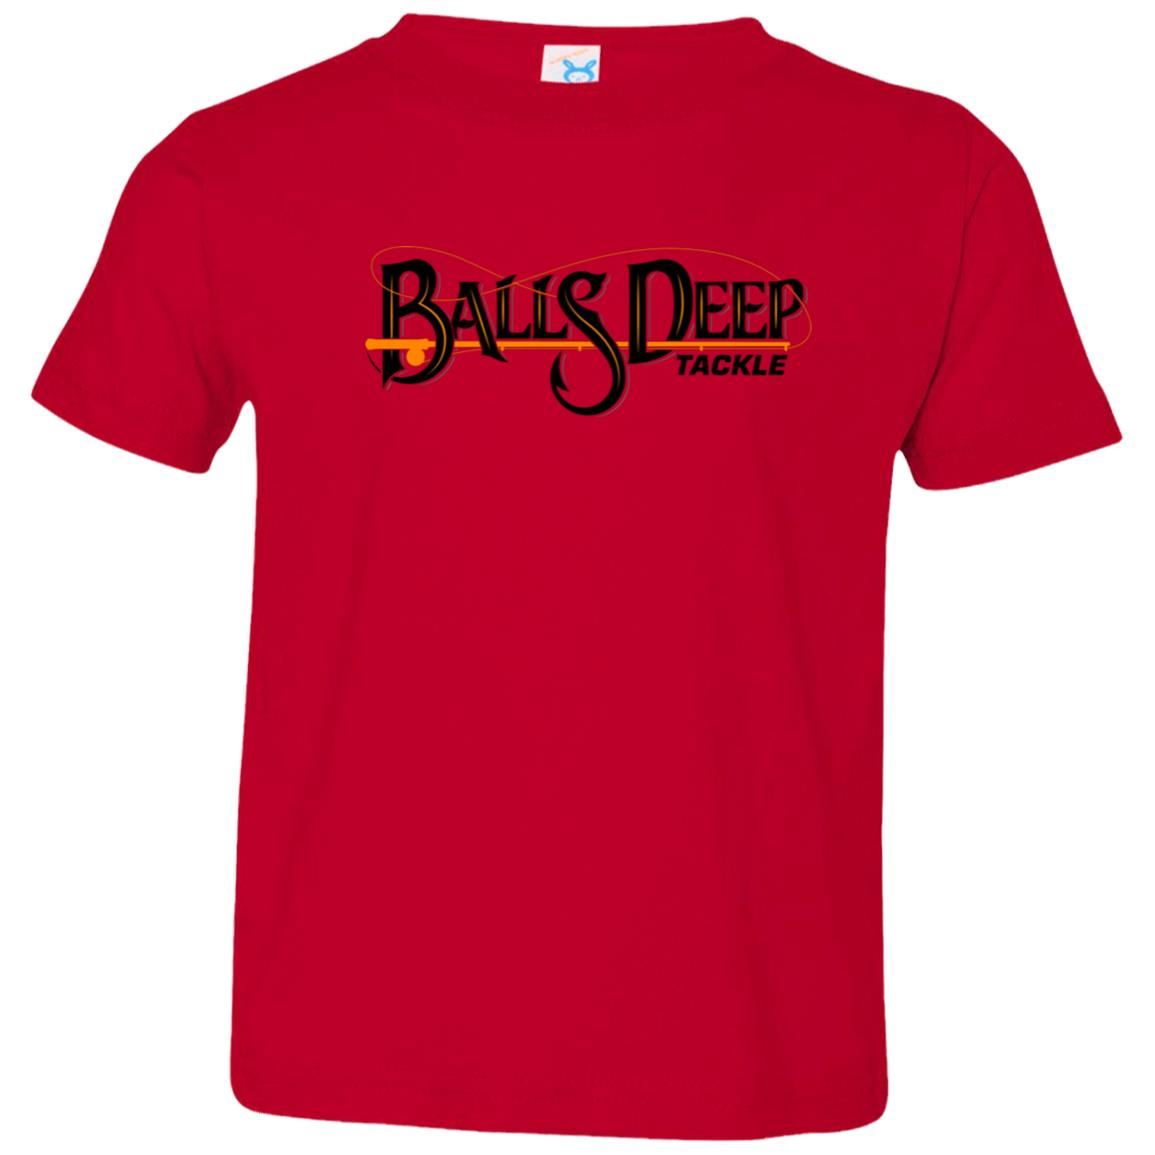 Balls Deep Original (Black) Toddler Tee